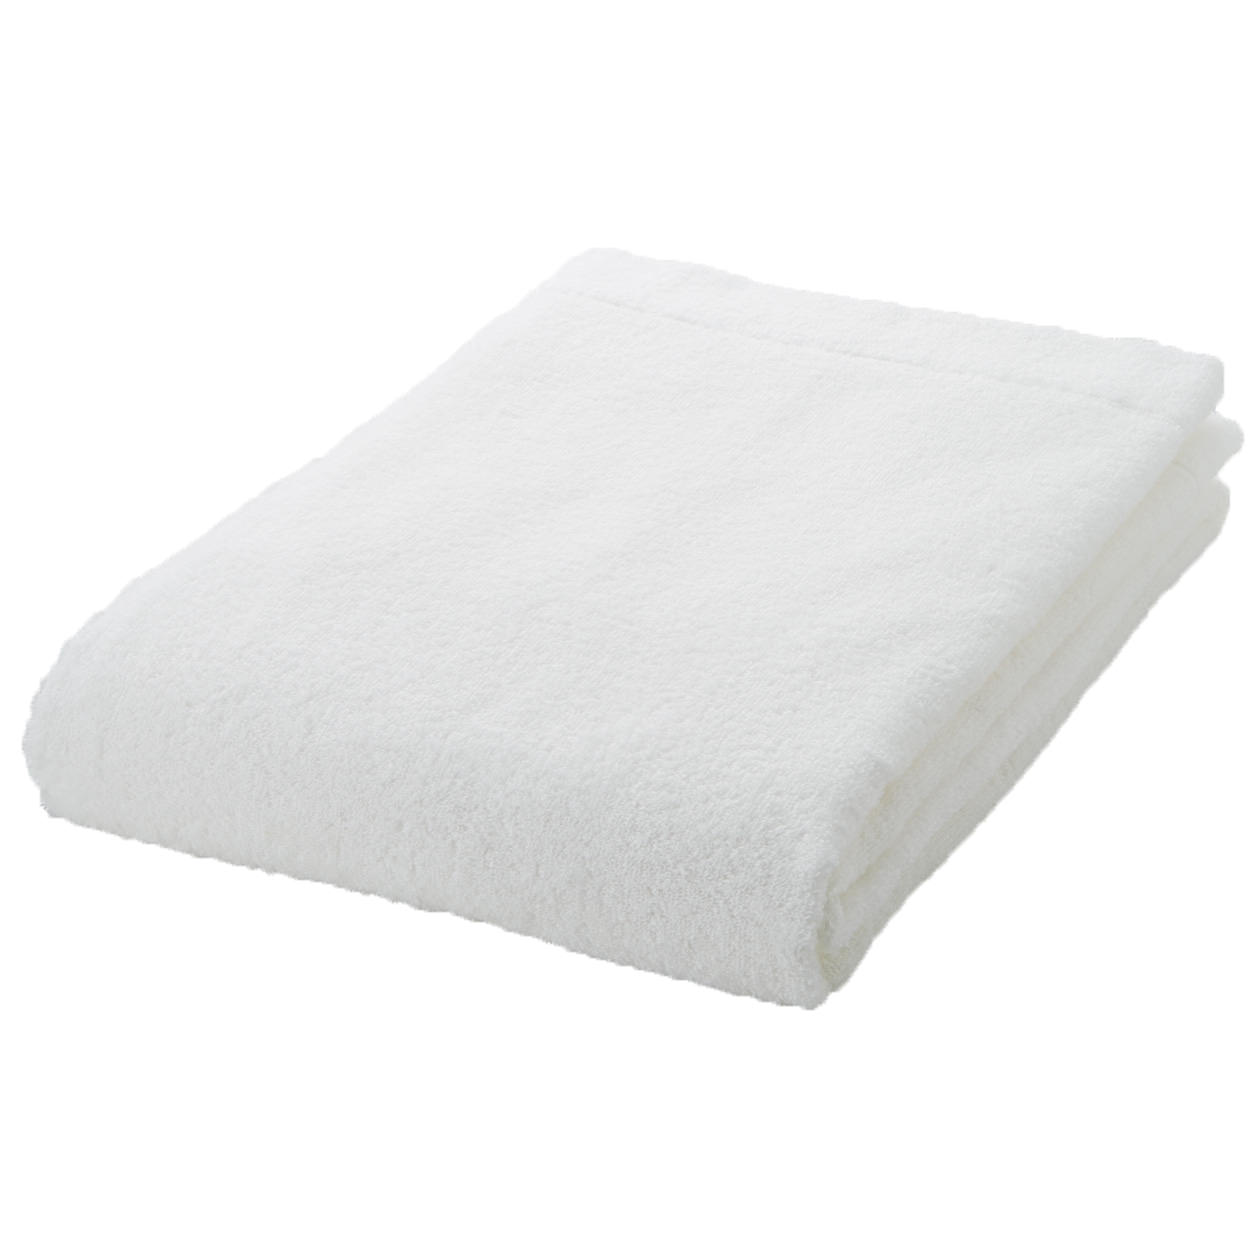 off white thin Bath towel